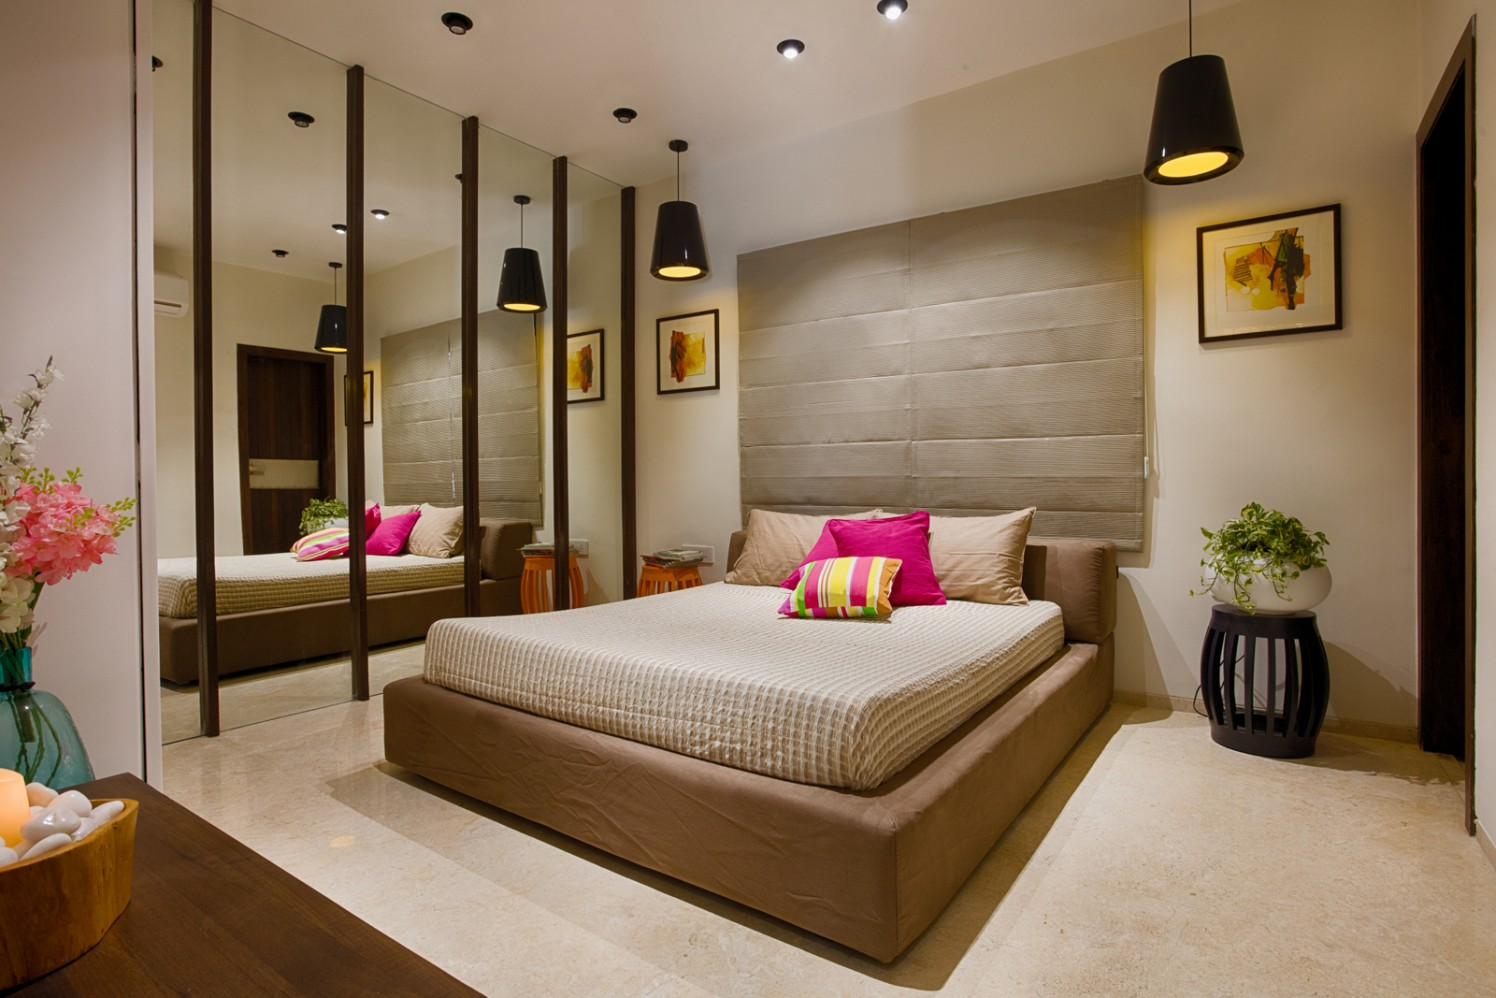 Fuchsia Elements In Beige Master Bedroom with Mirror Wall and Hanging Lights by Dhaval Patel Bedroom Minimalistic | Interior Design Photos & Ideas